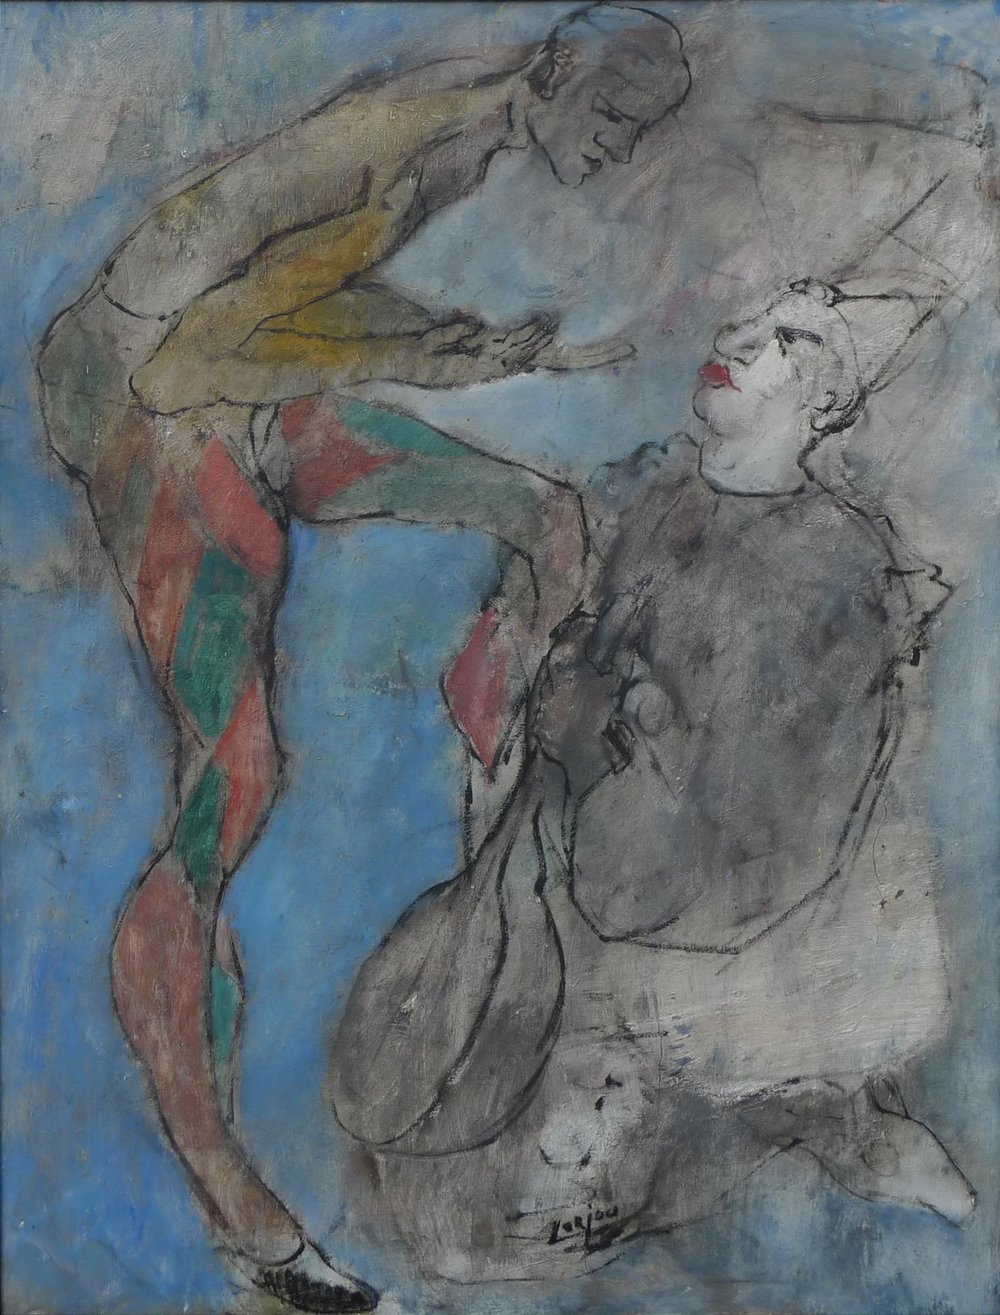 Harlequin and white clown (c.1930-35)